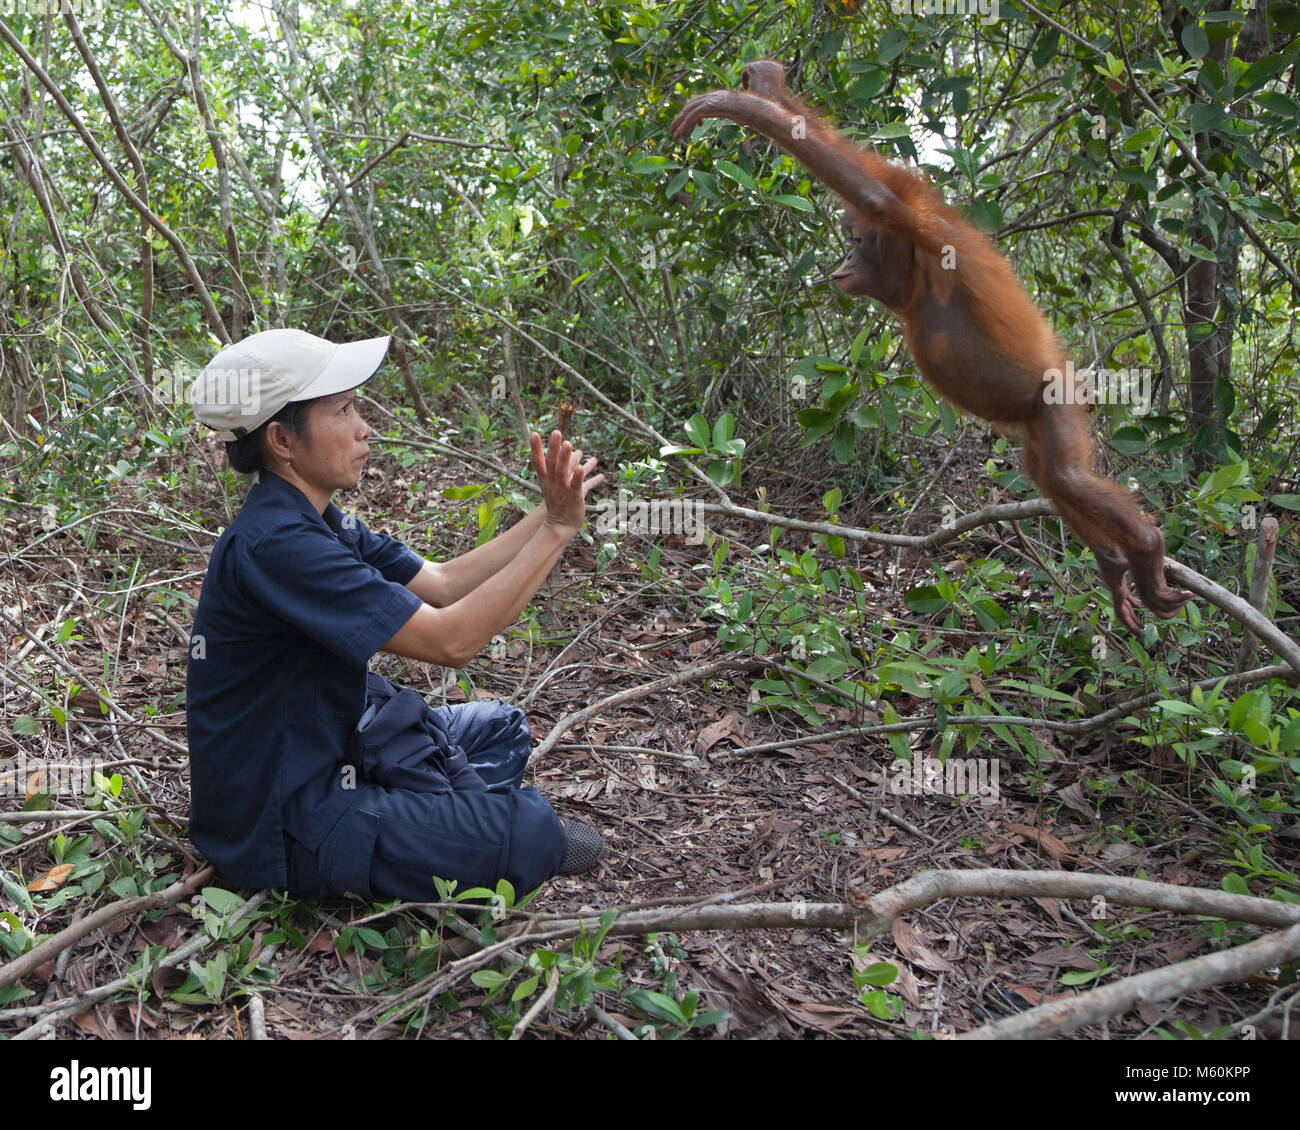 Two year old orangutan orphan jumping from tree branch into caretaker's arms, during forest play session to - Stock Image